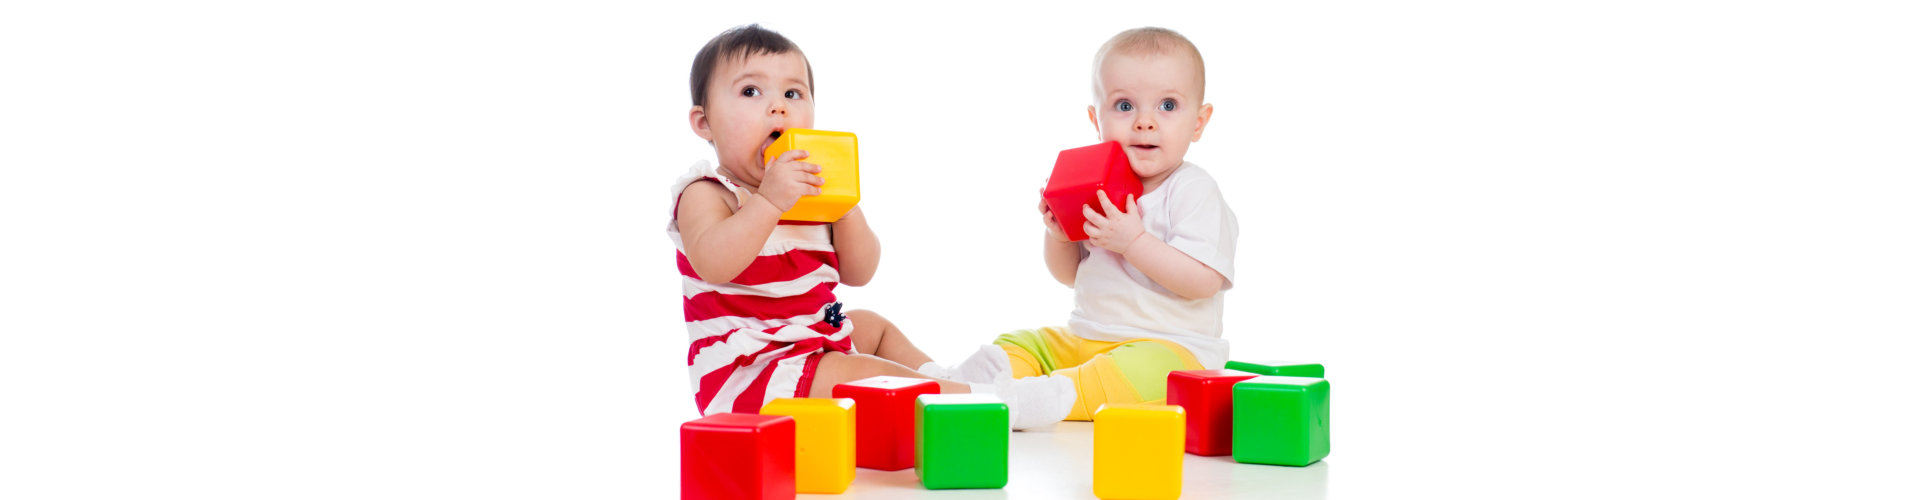 Early Childhood Education in Mississippi| St. Mary Academy, Inc.